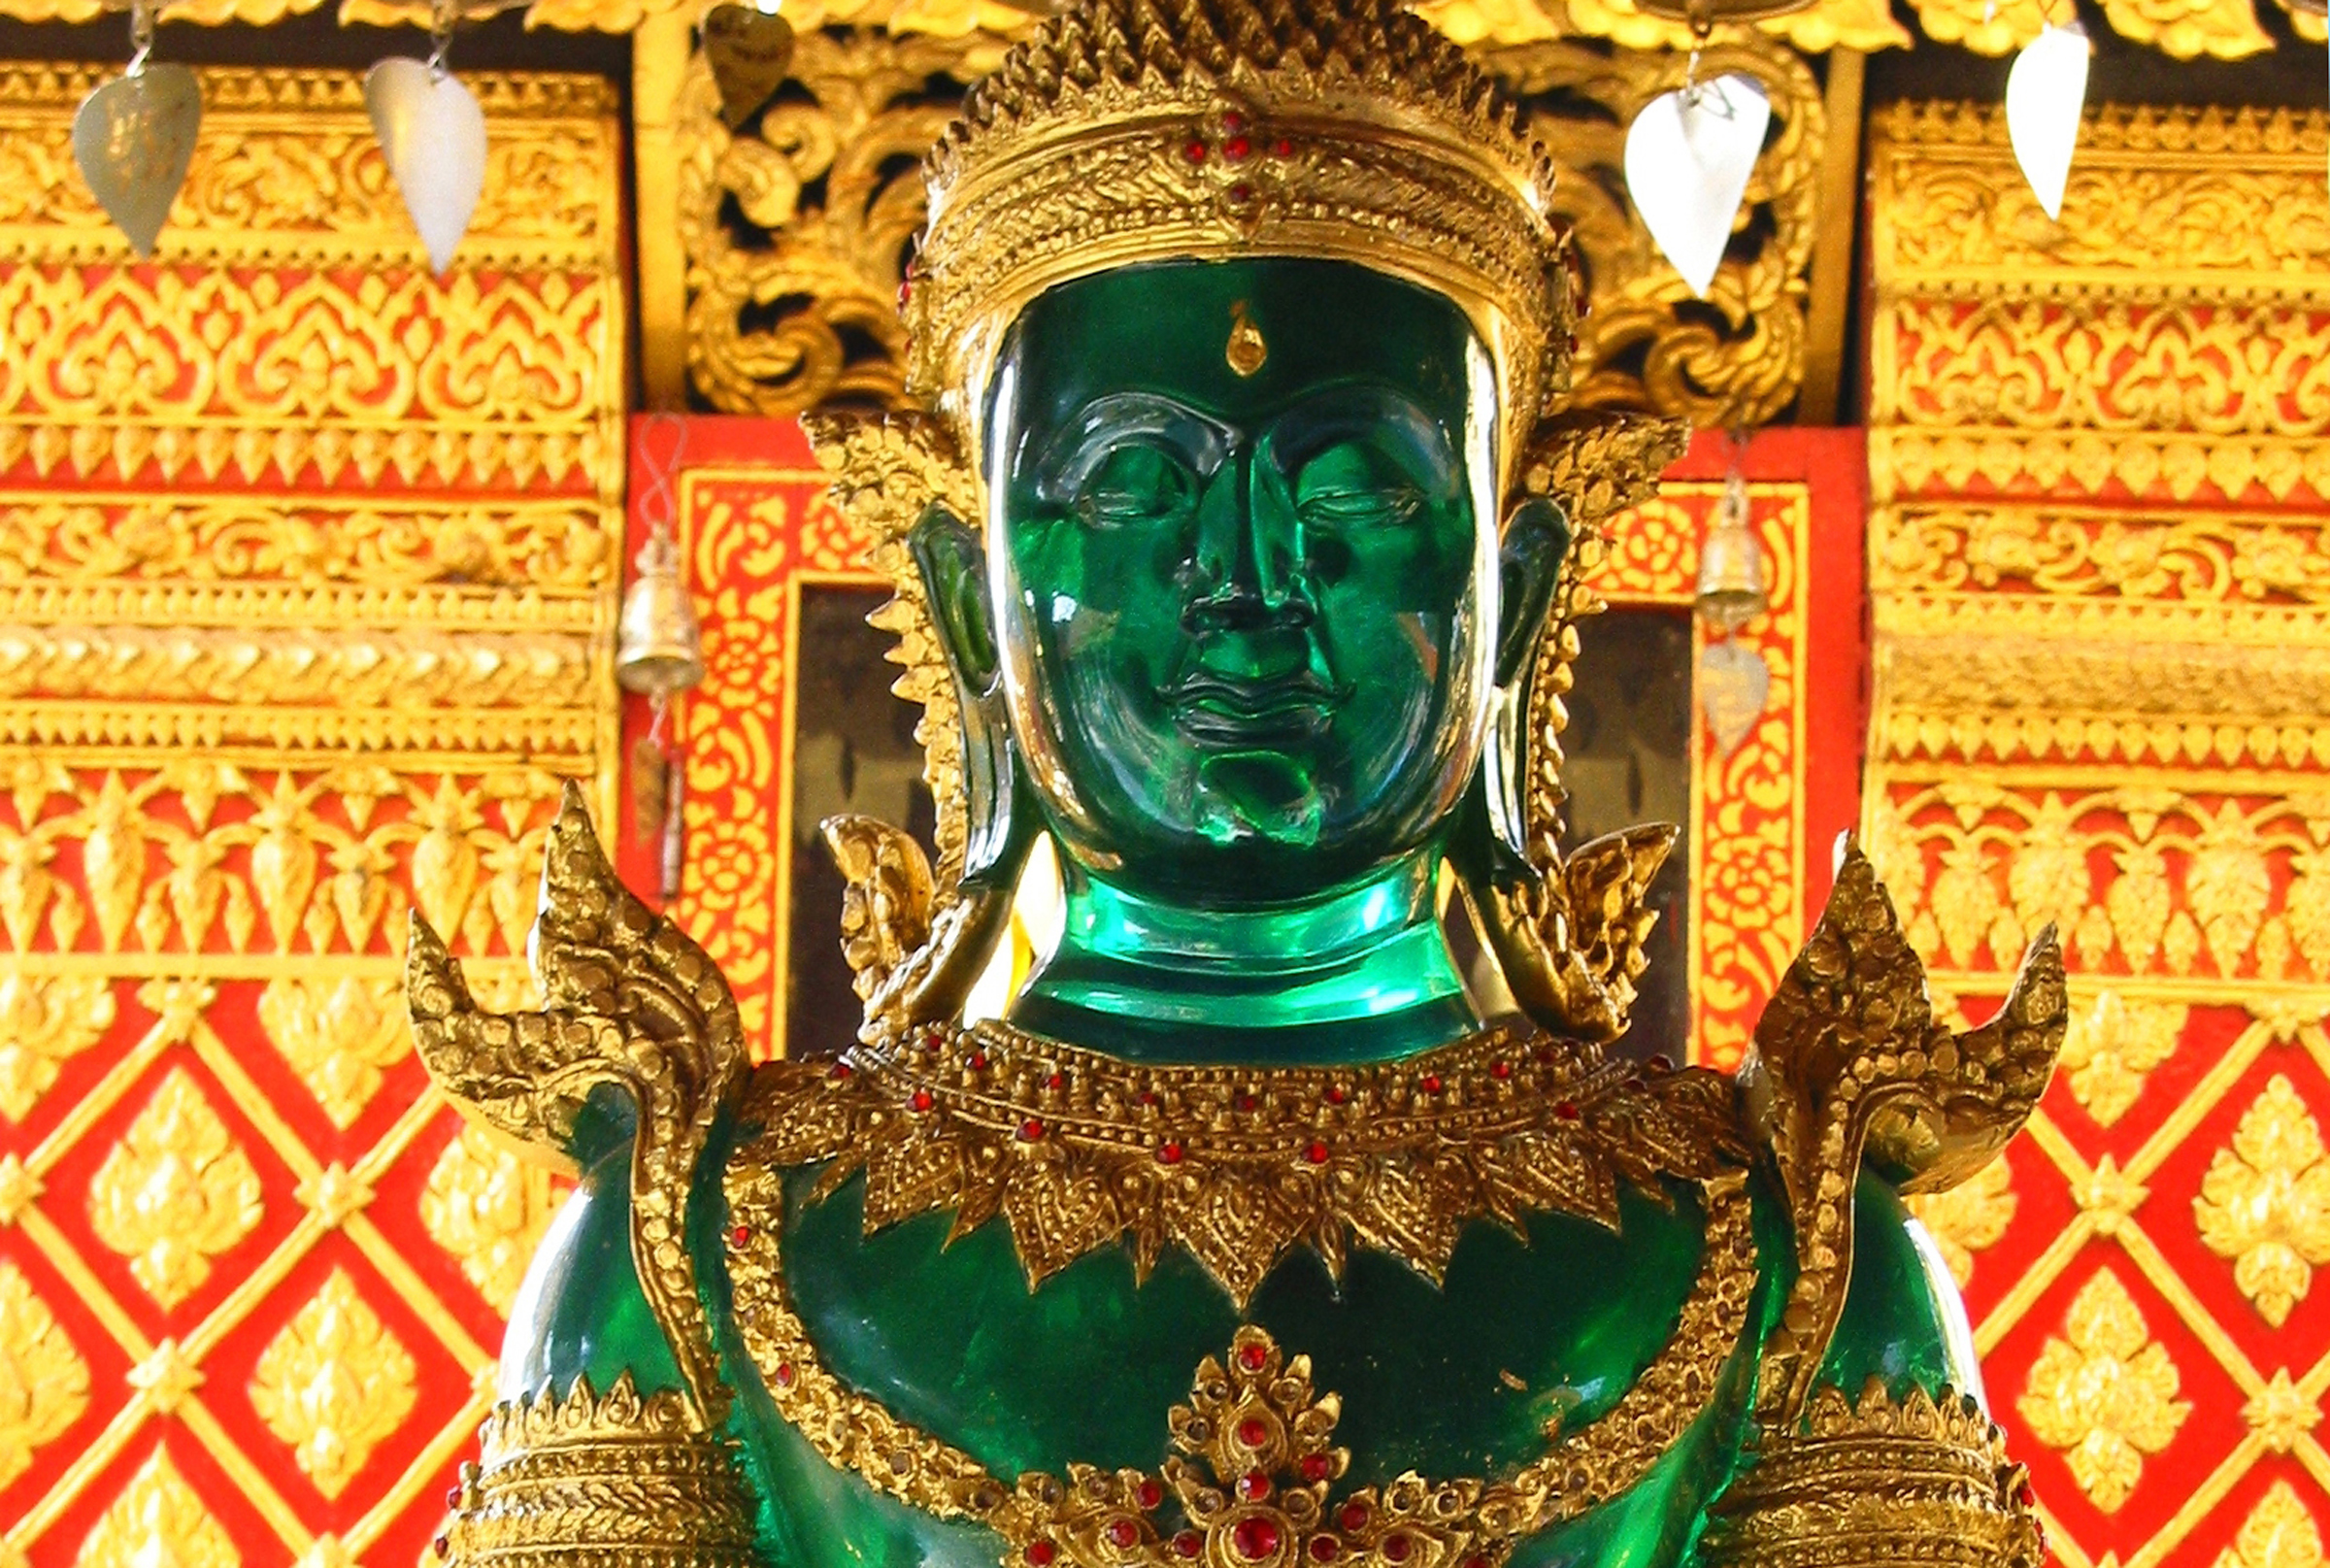 emerald-buddha-wat-doi-suthep-wp